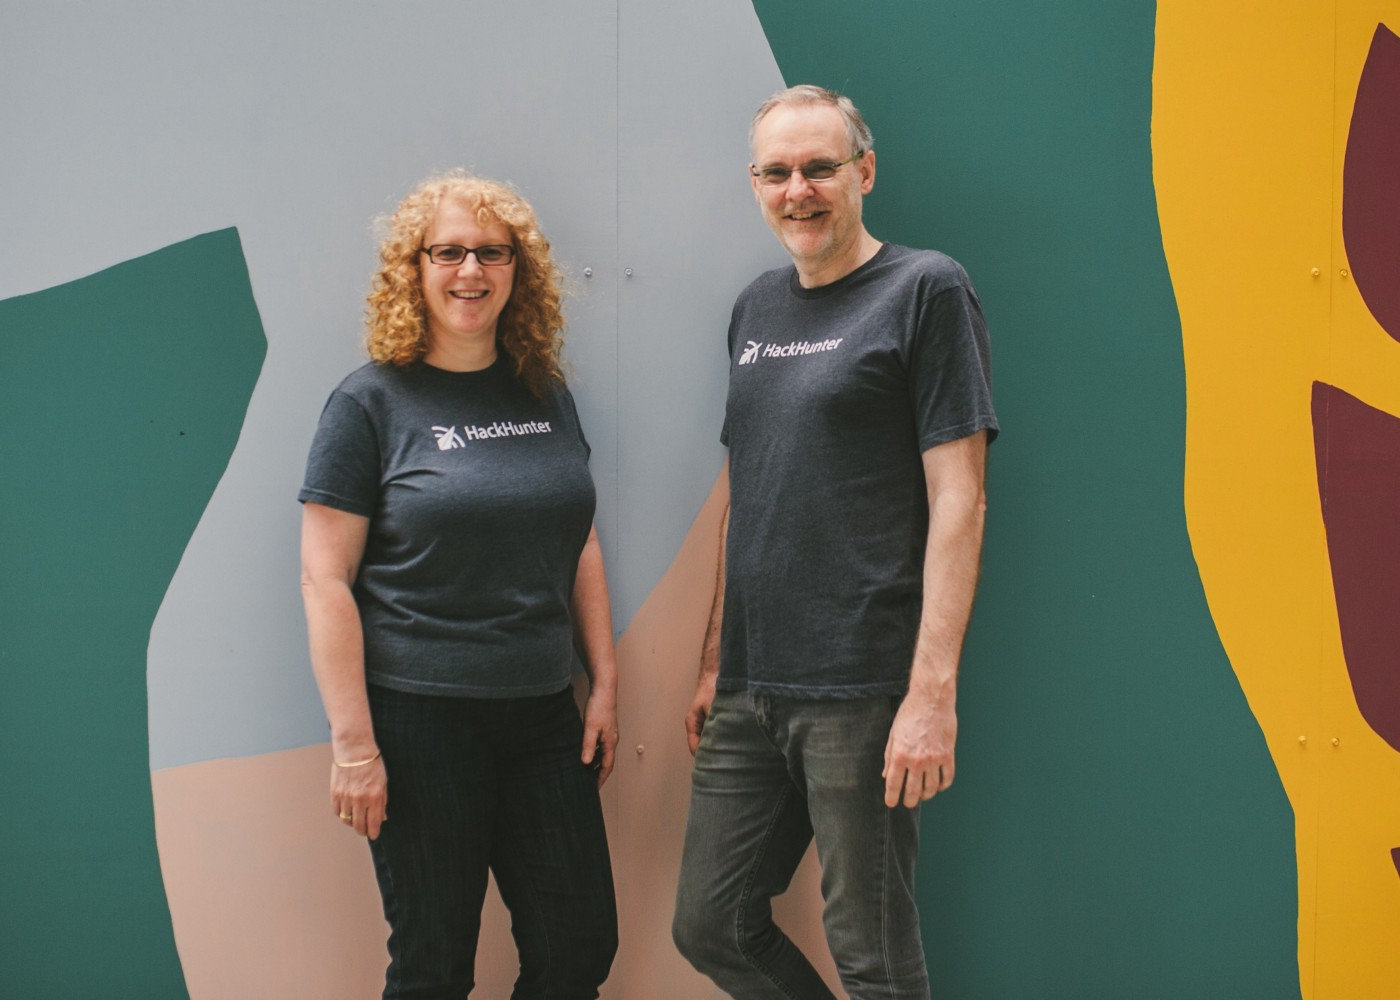 HackHunter Co-Founders Tracie Thompson and Mike Thompson pose in front of a colourful wall.